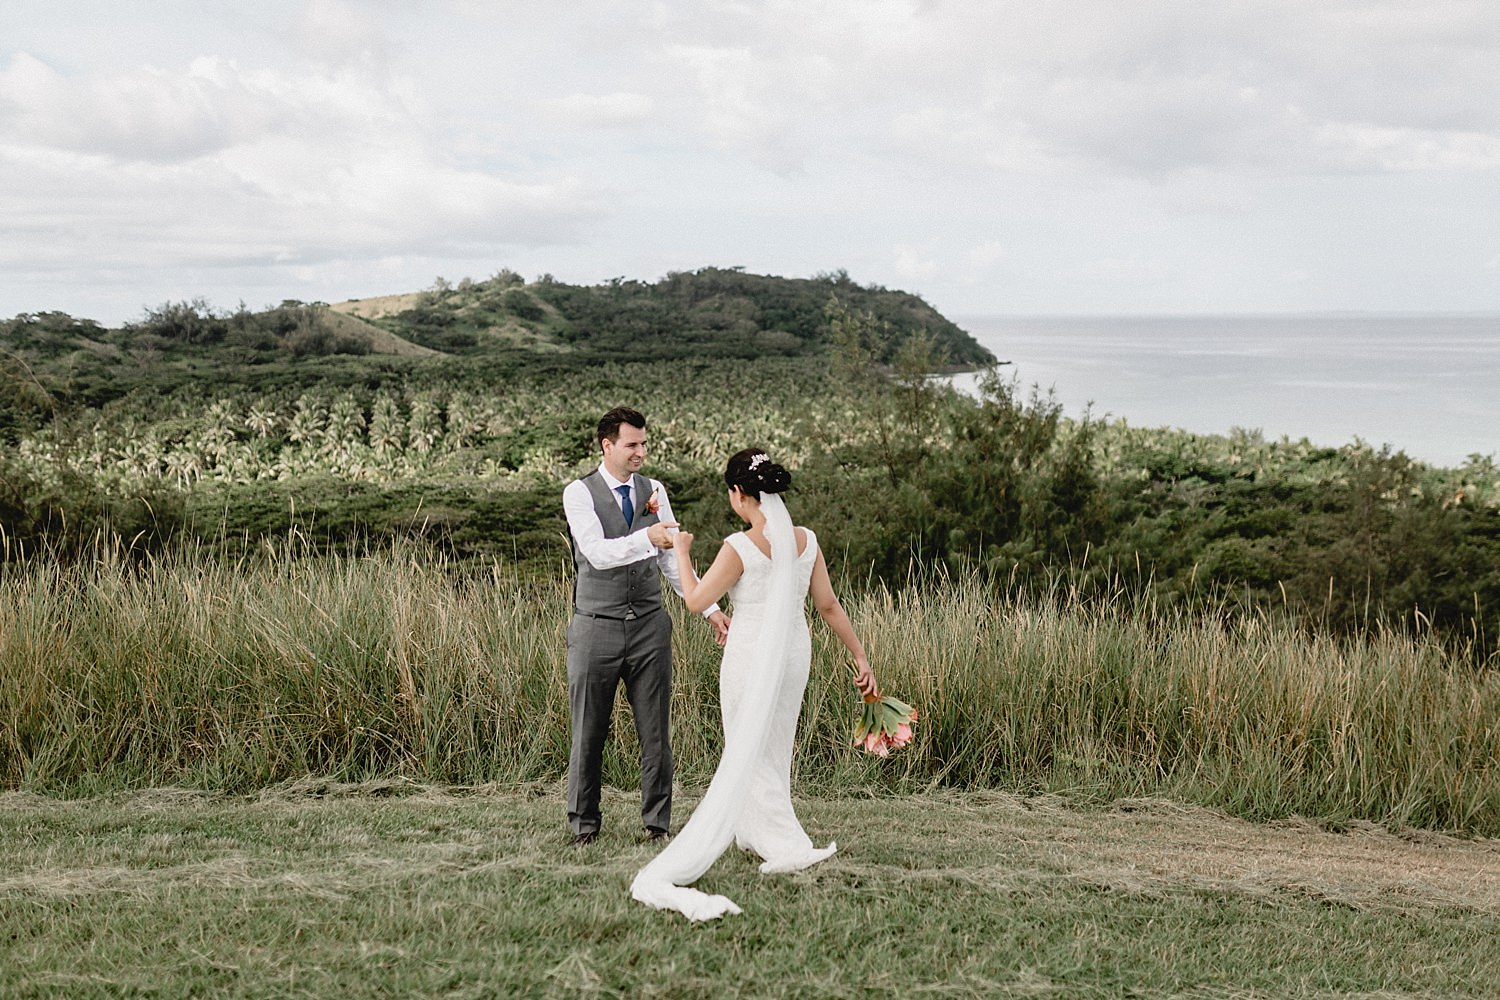 fiji, destination wedding, musket cove resort wedding, destination wedding photographer, canberra wedding photography, southern highlands wedding, tropical wedding, fijian wedding, summer